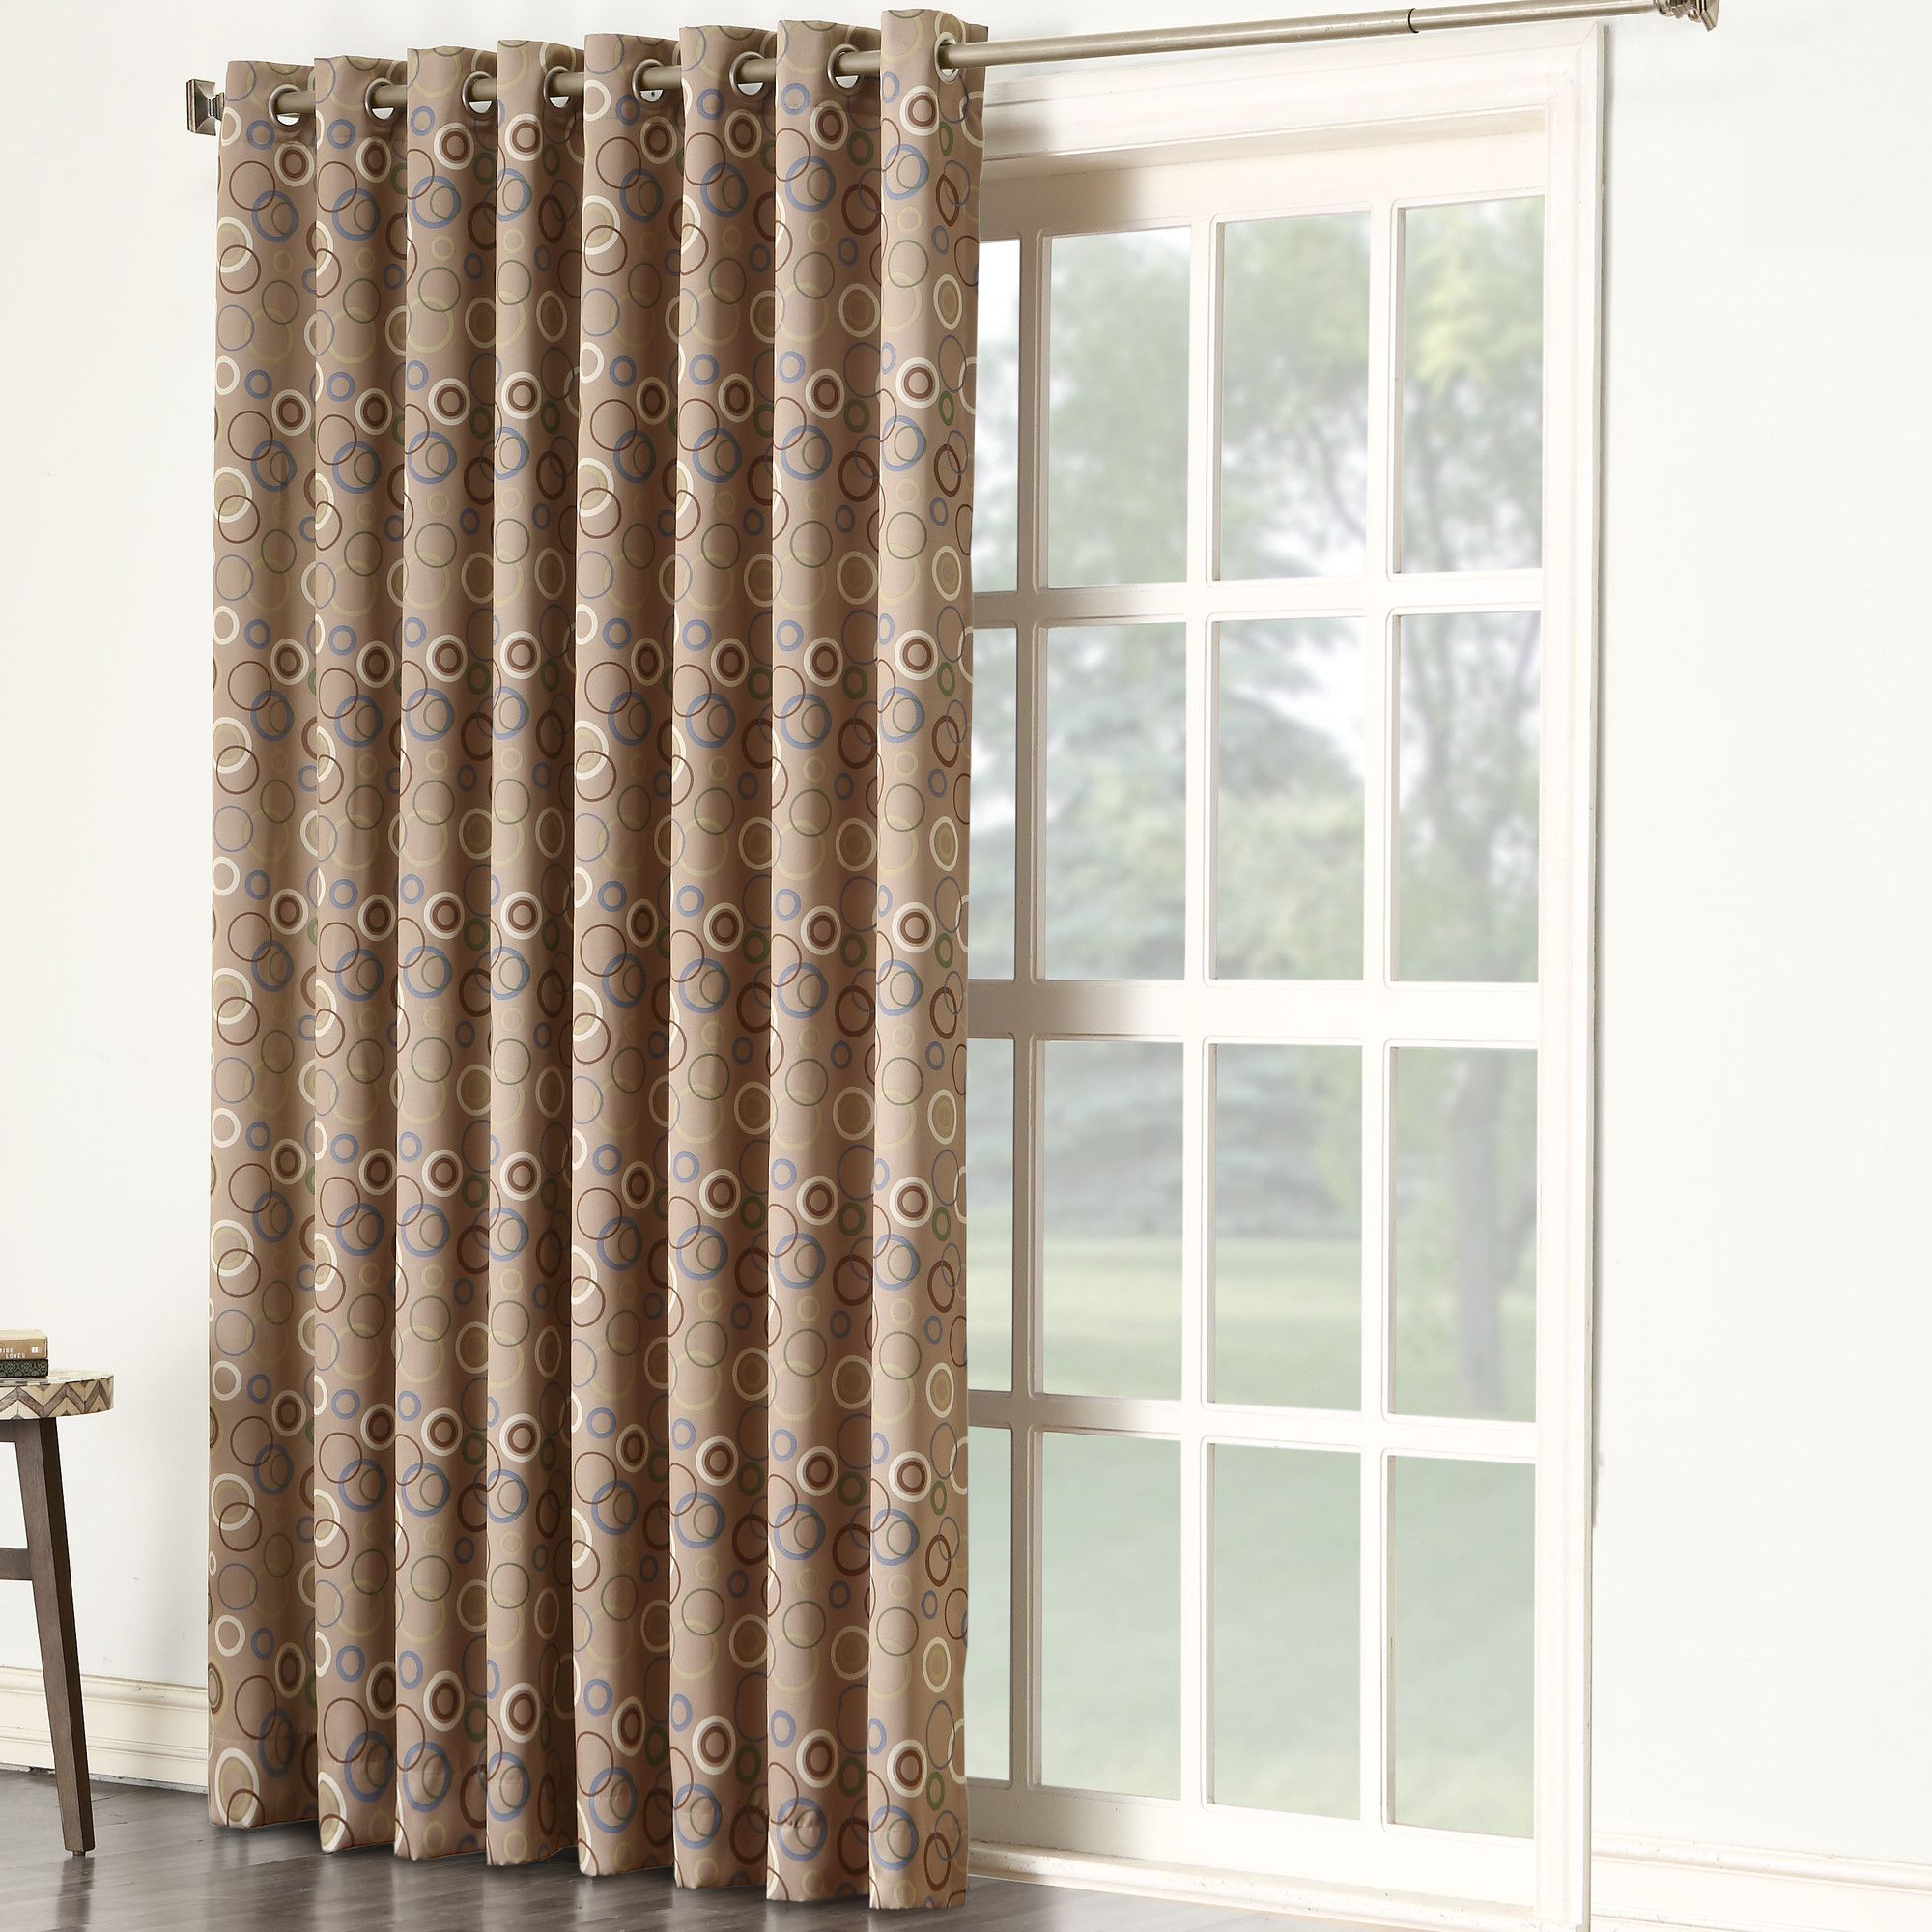 rod design curtains shower extra curtain to pertaining x wide measurements rods